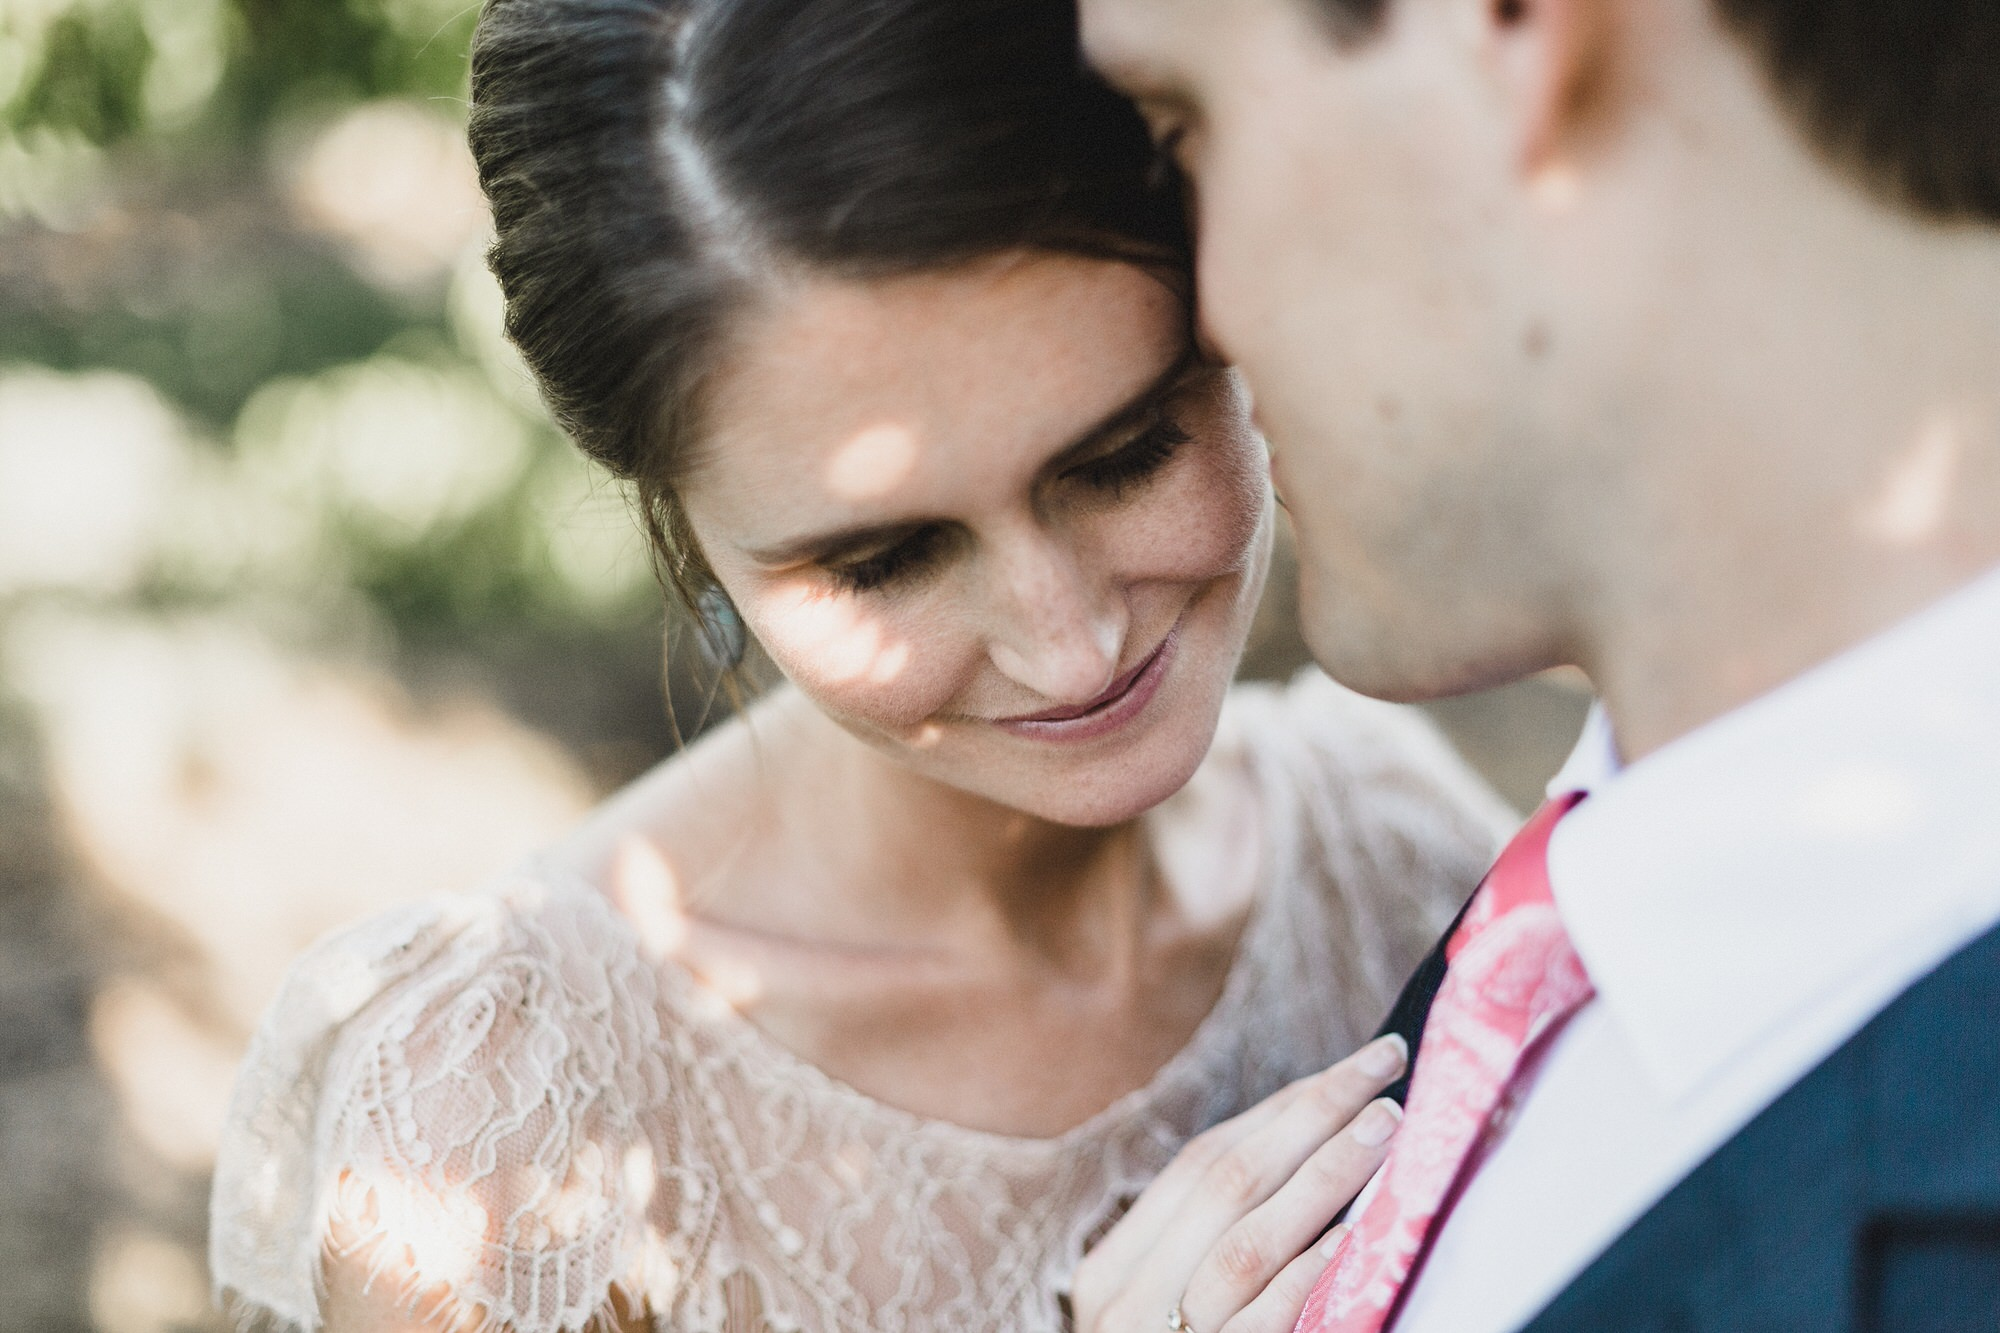 brisbane wedding photograph places